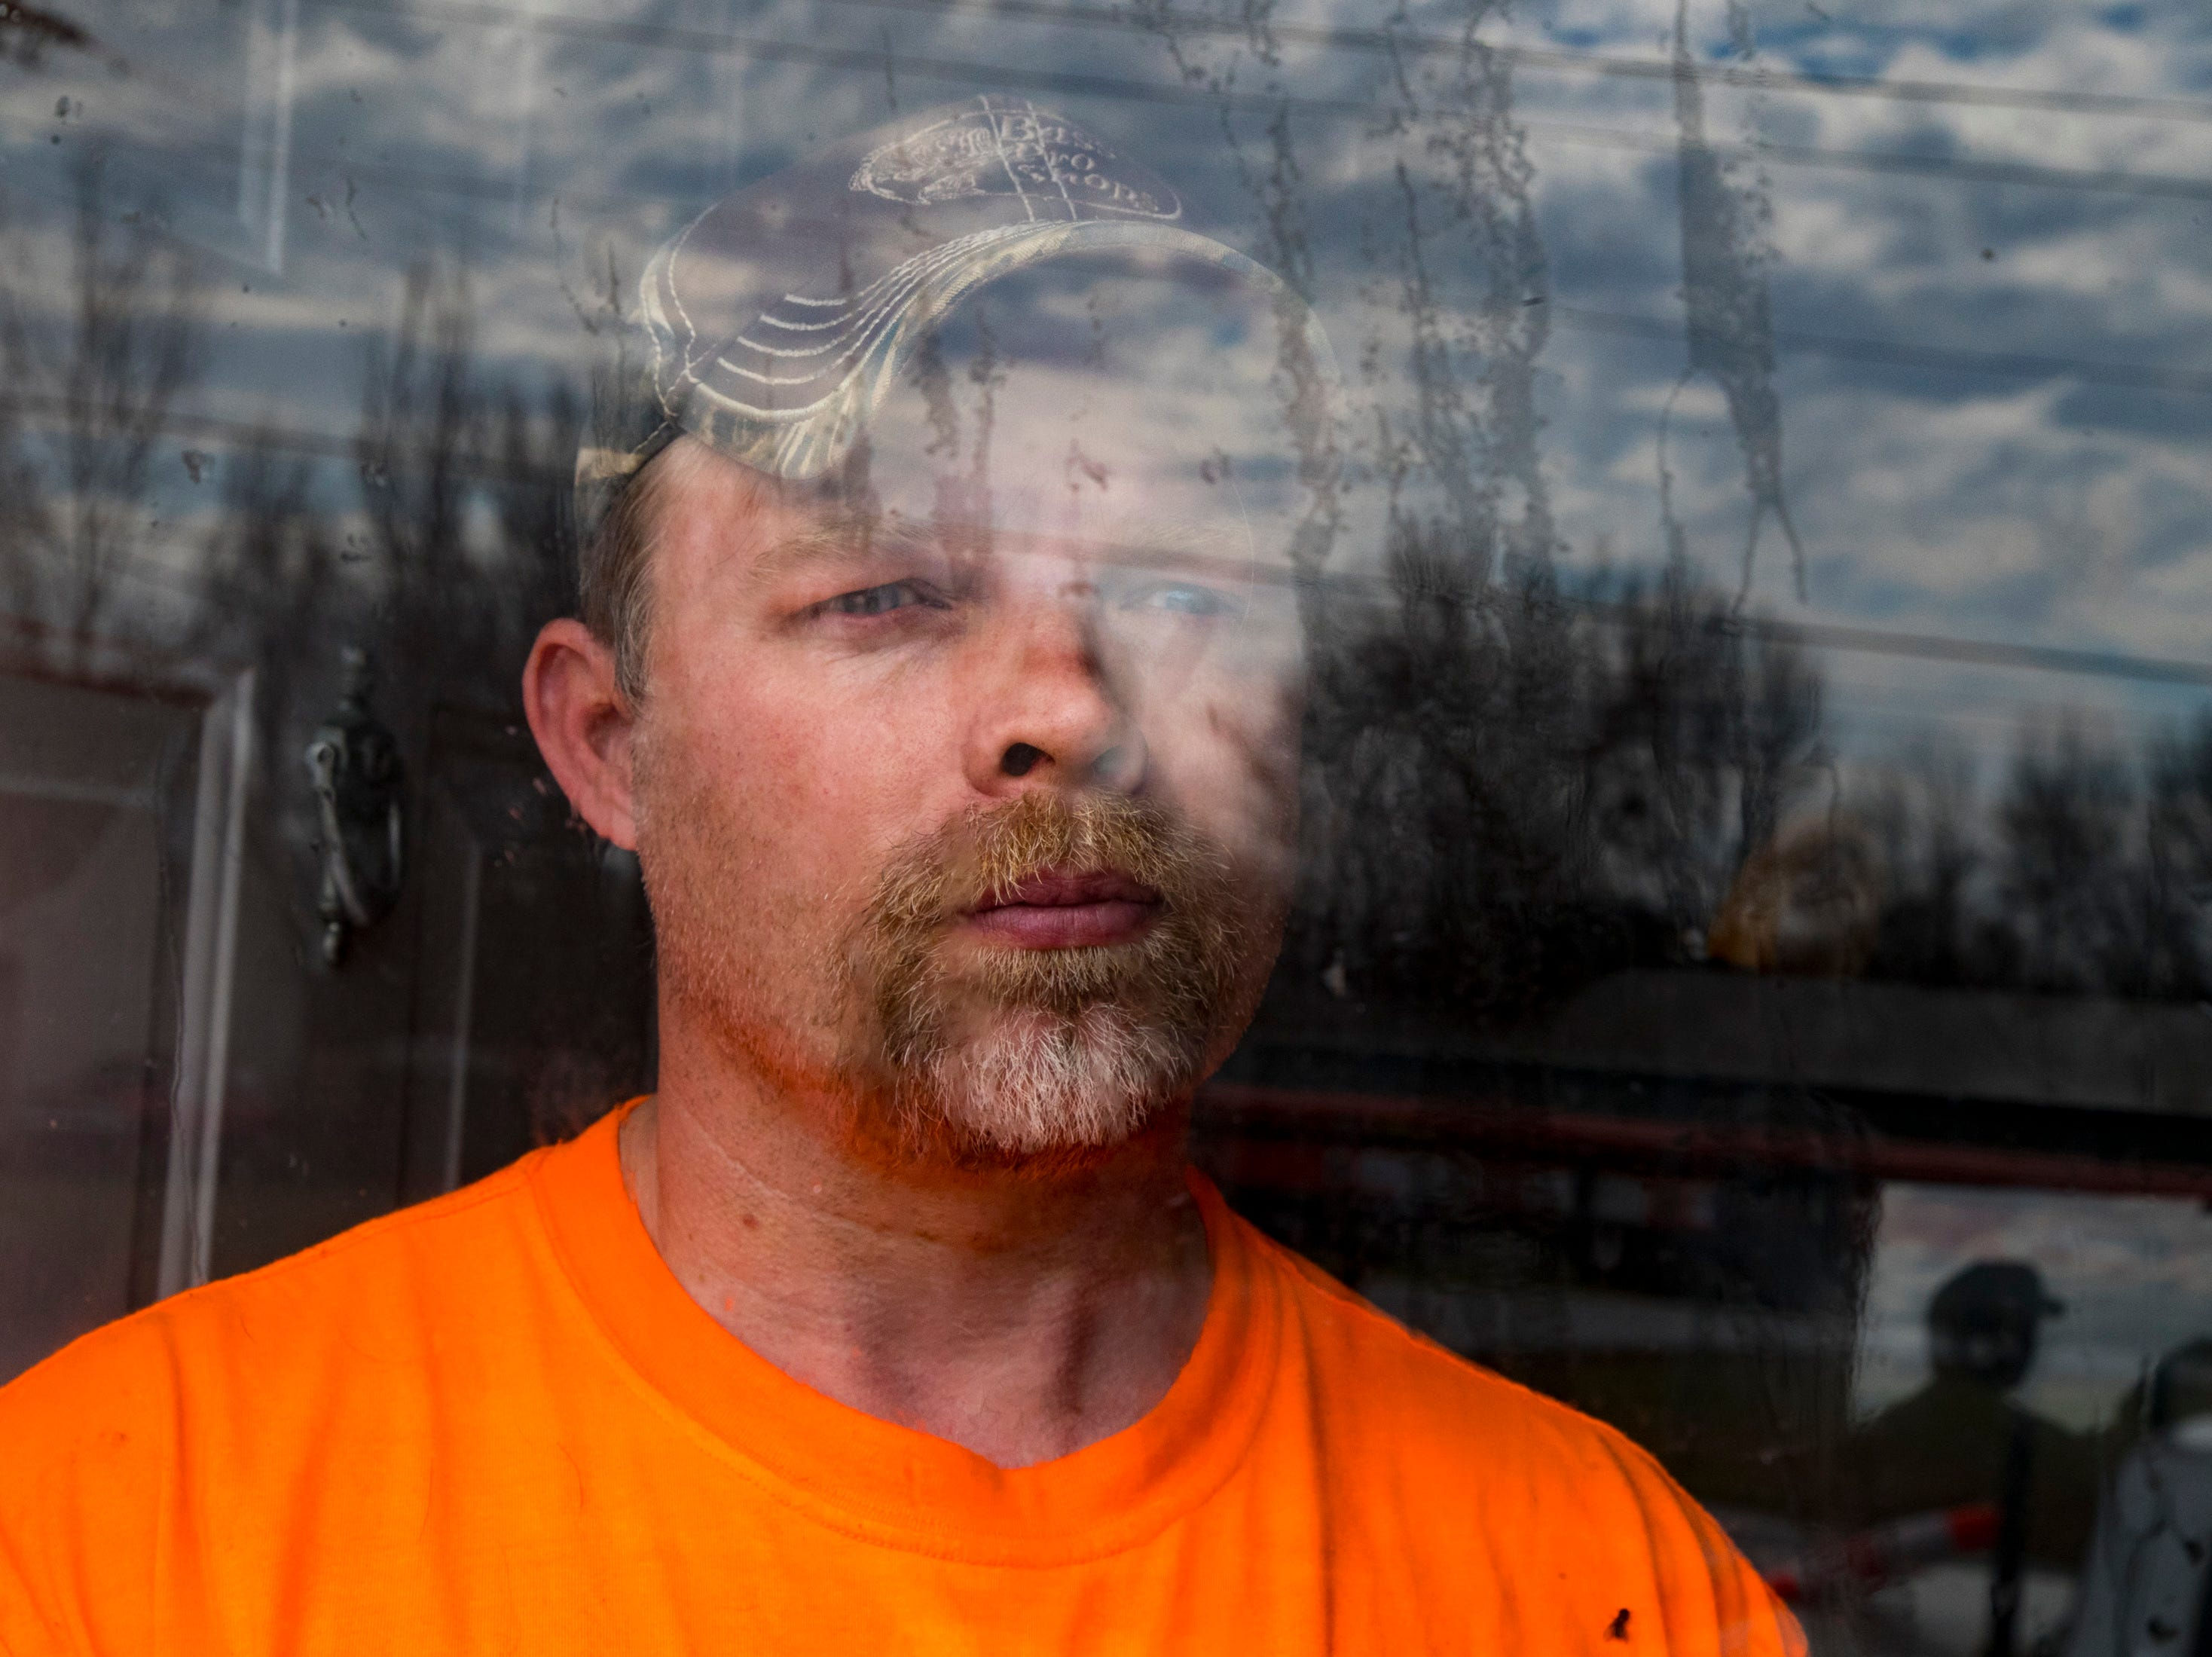 Michael Chase poses for a portrait at his home in Montgomery County on Thursday, March 14, 2019. Chase lost his daughter, Ariel Hope Chase, to suicide on March 4, 2019.